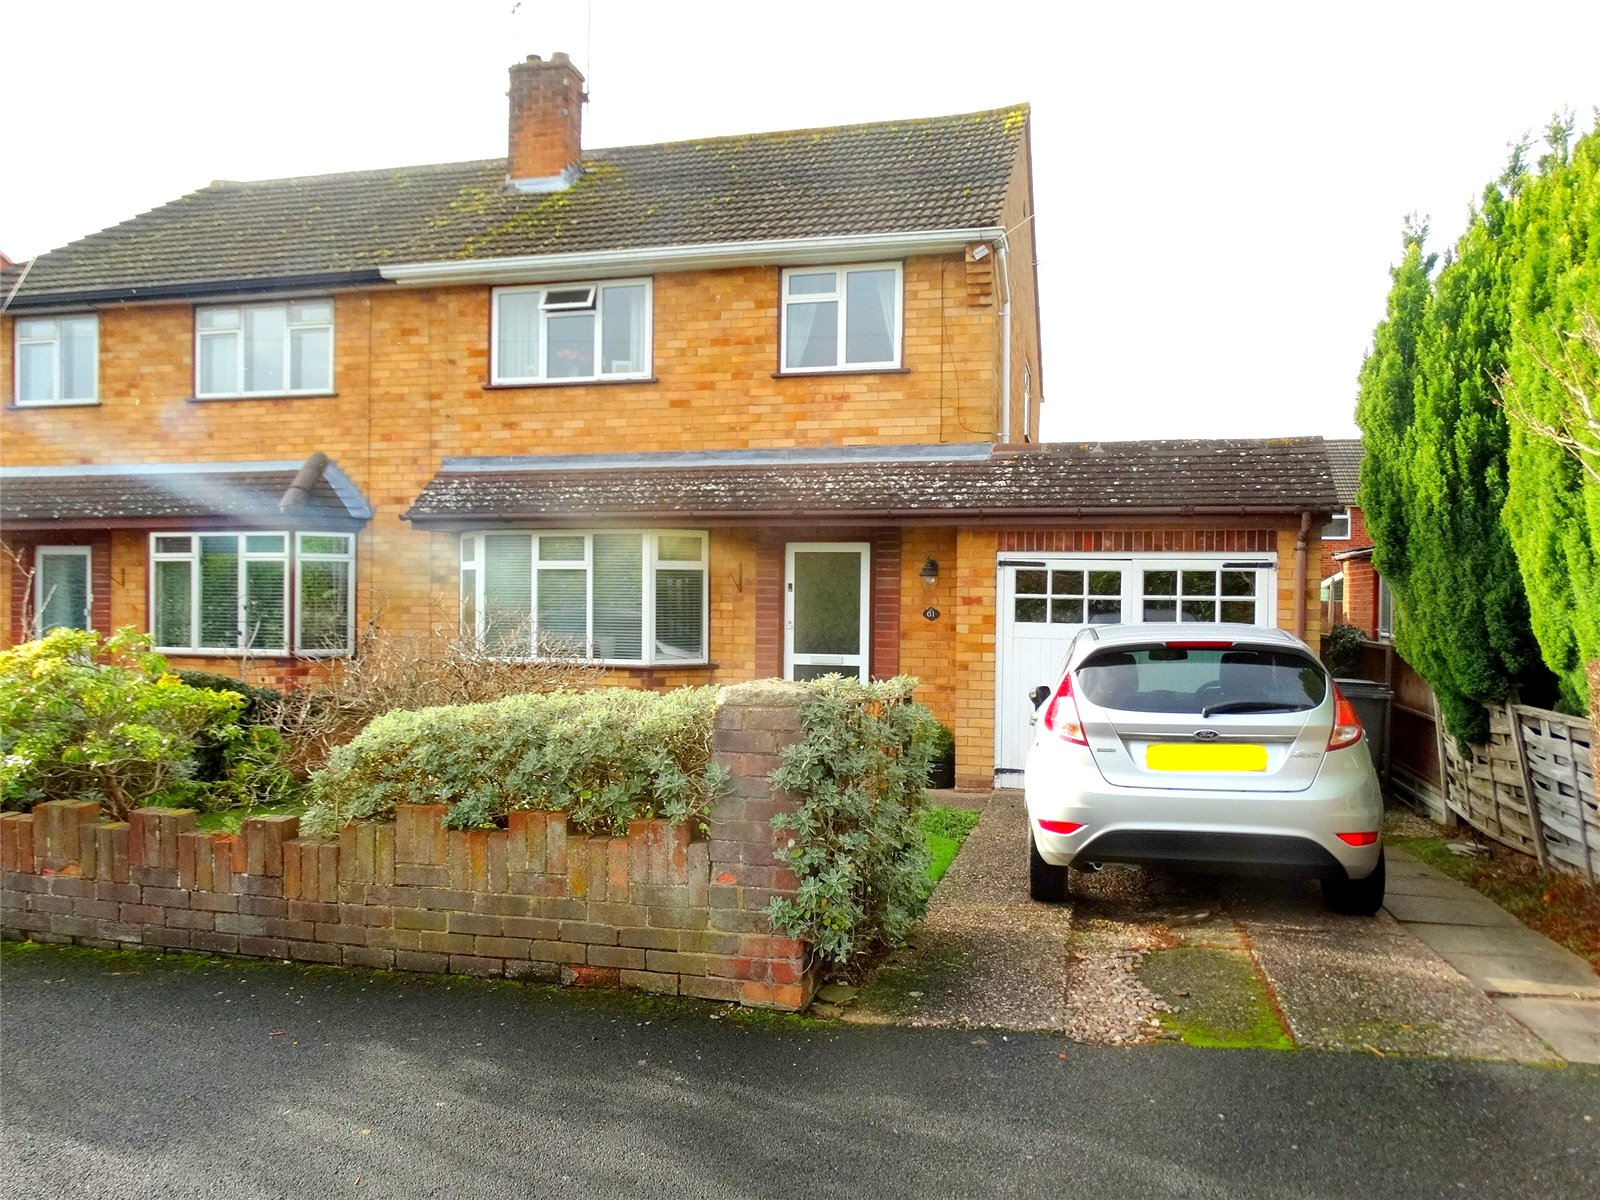 3 Bedrooms Semi Detached House for sale in Links View Crescent WORCESTER Worcesershire WR5